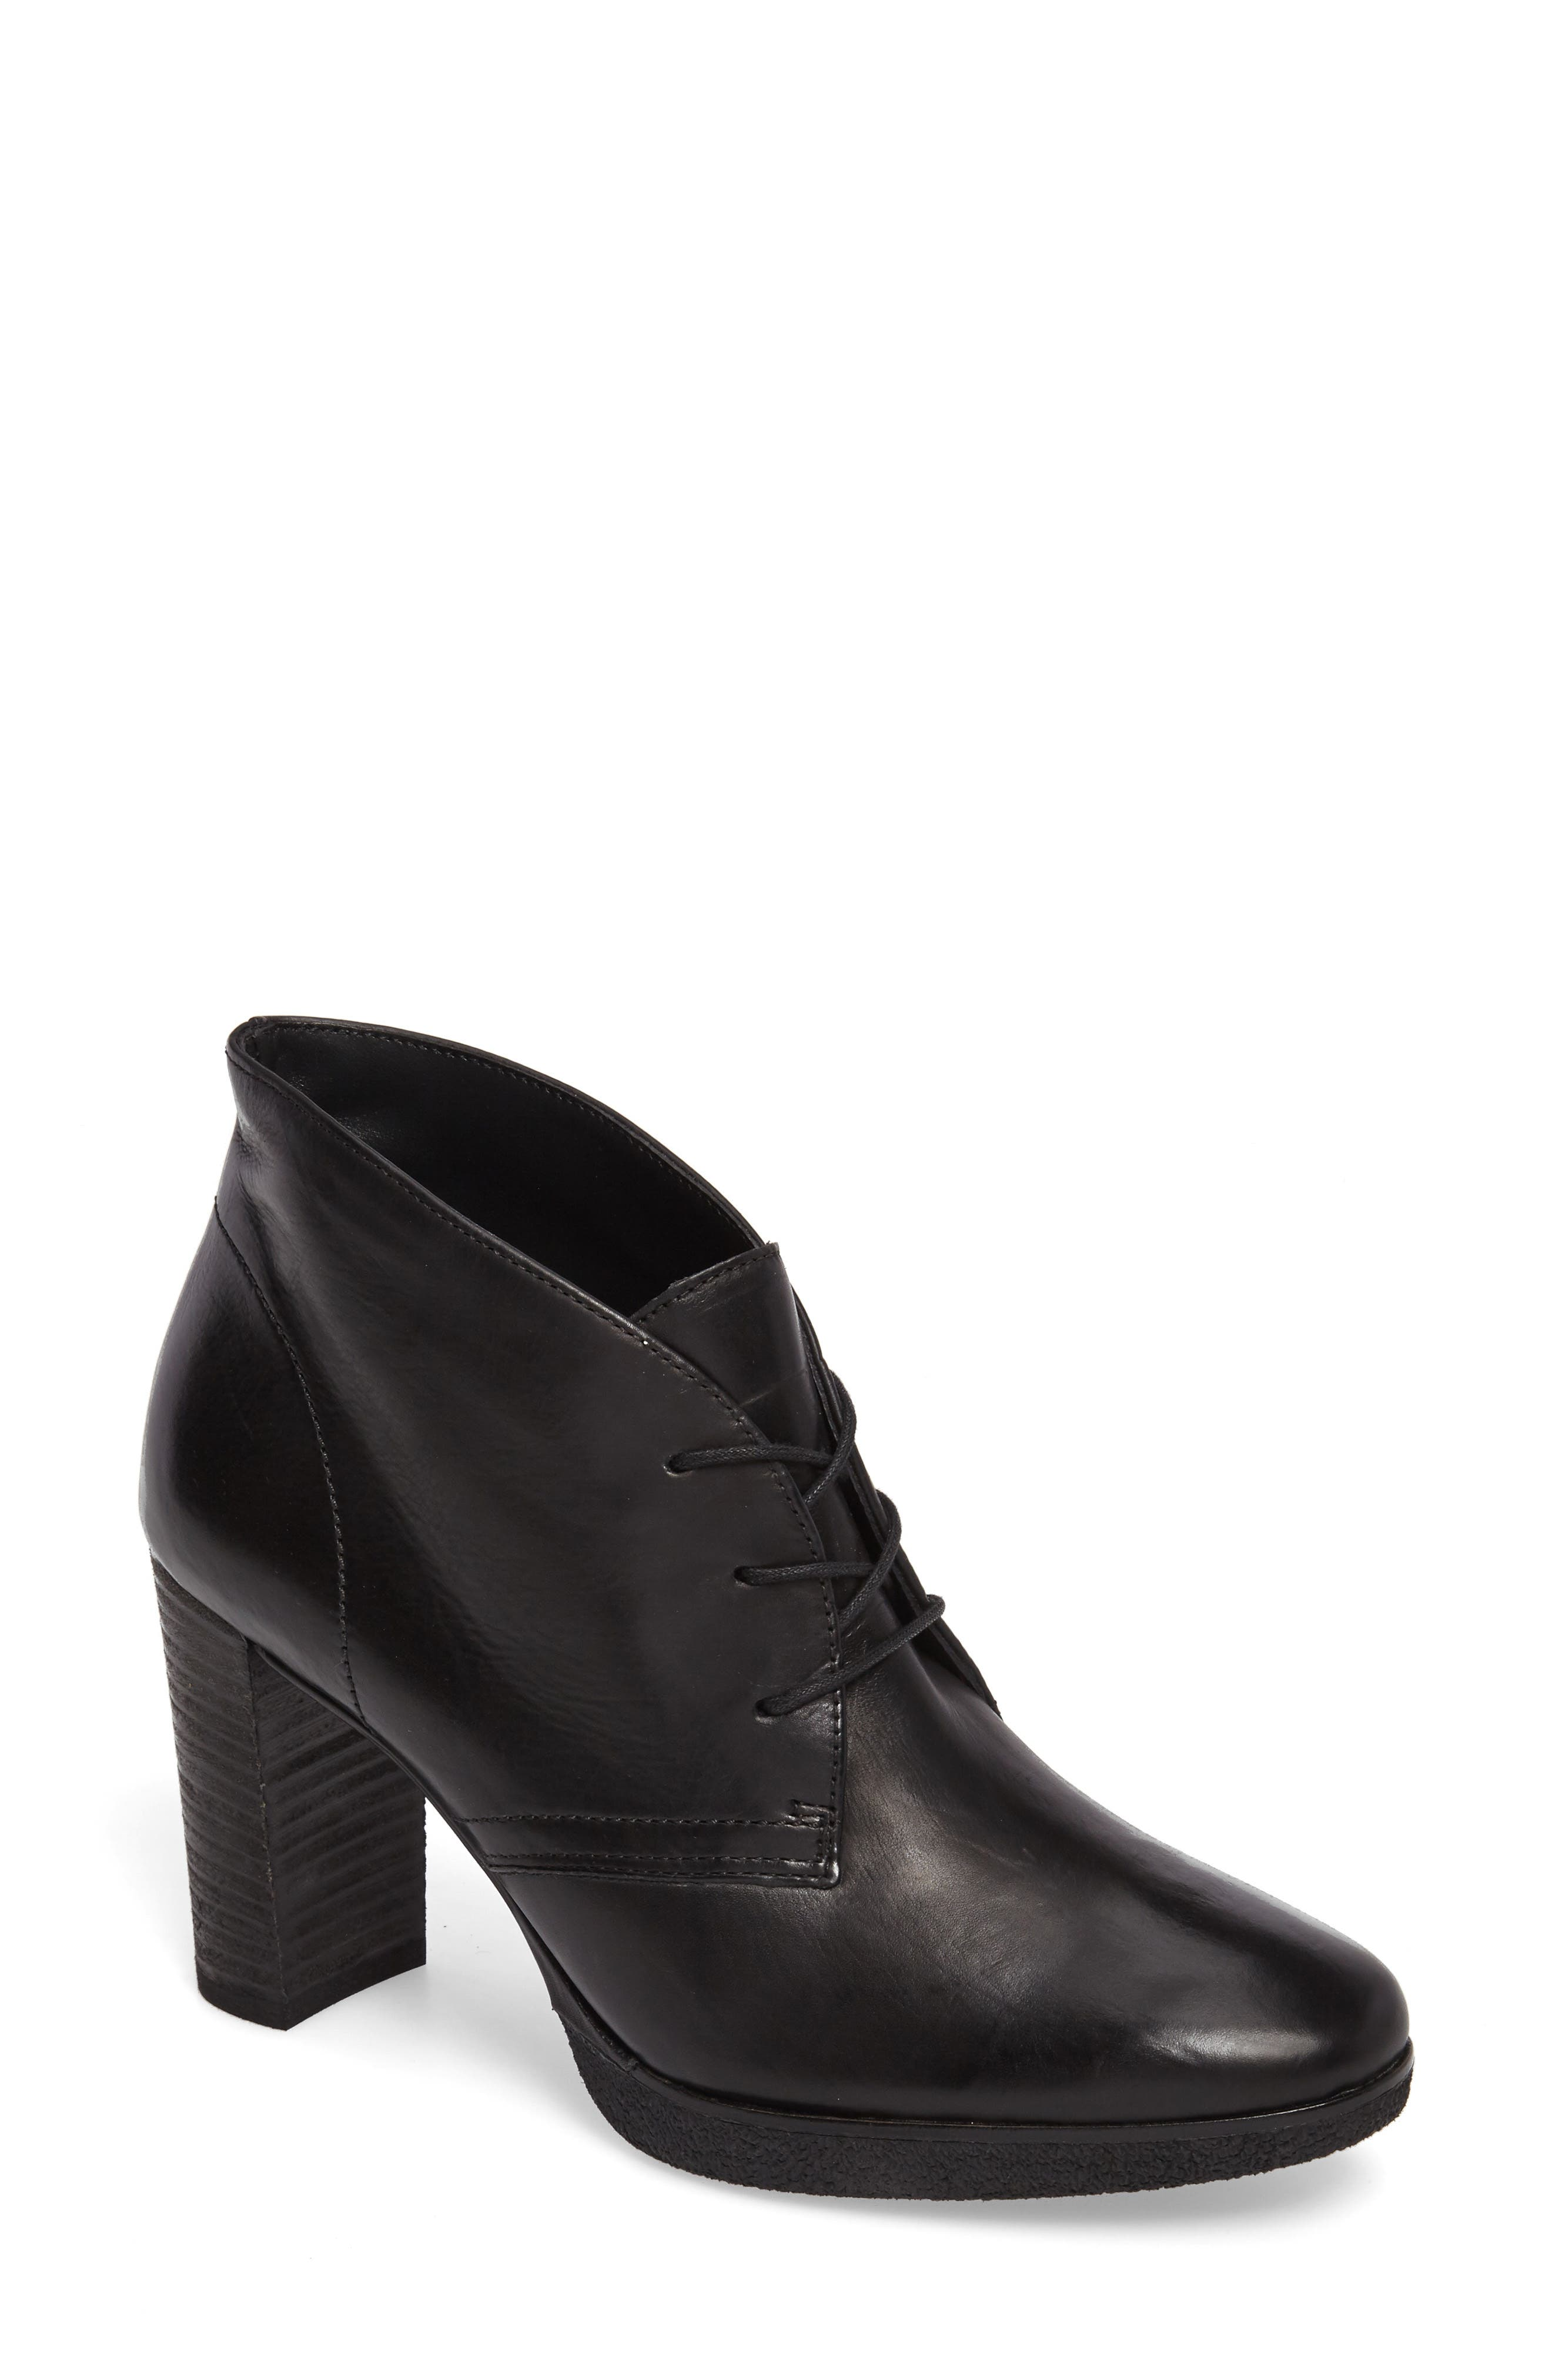 Ophelia Lace-Up Bootie,                             Main thumbnail 1, color,                             Black Leather